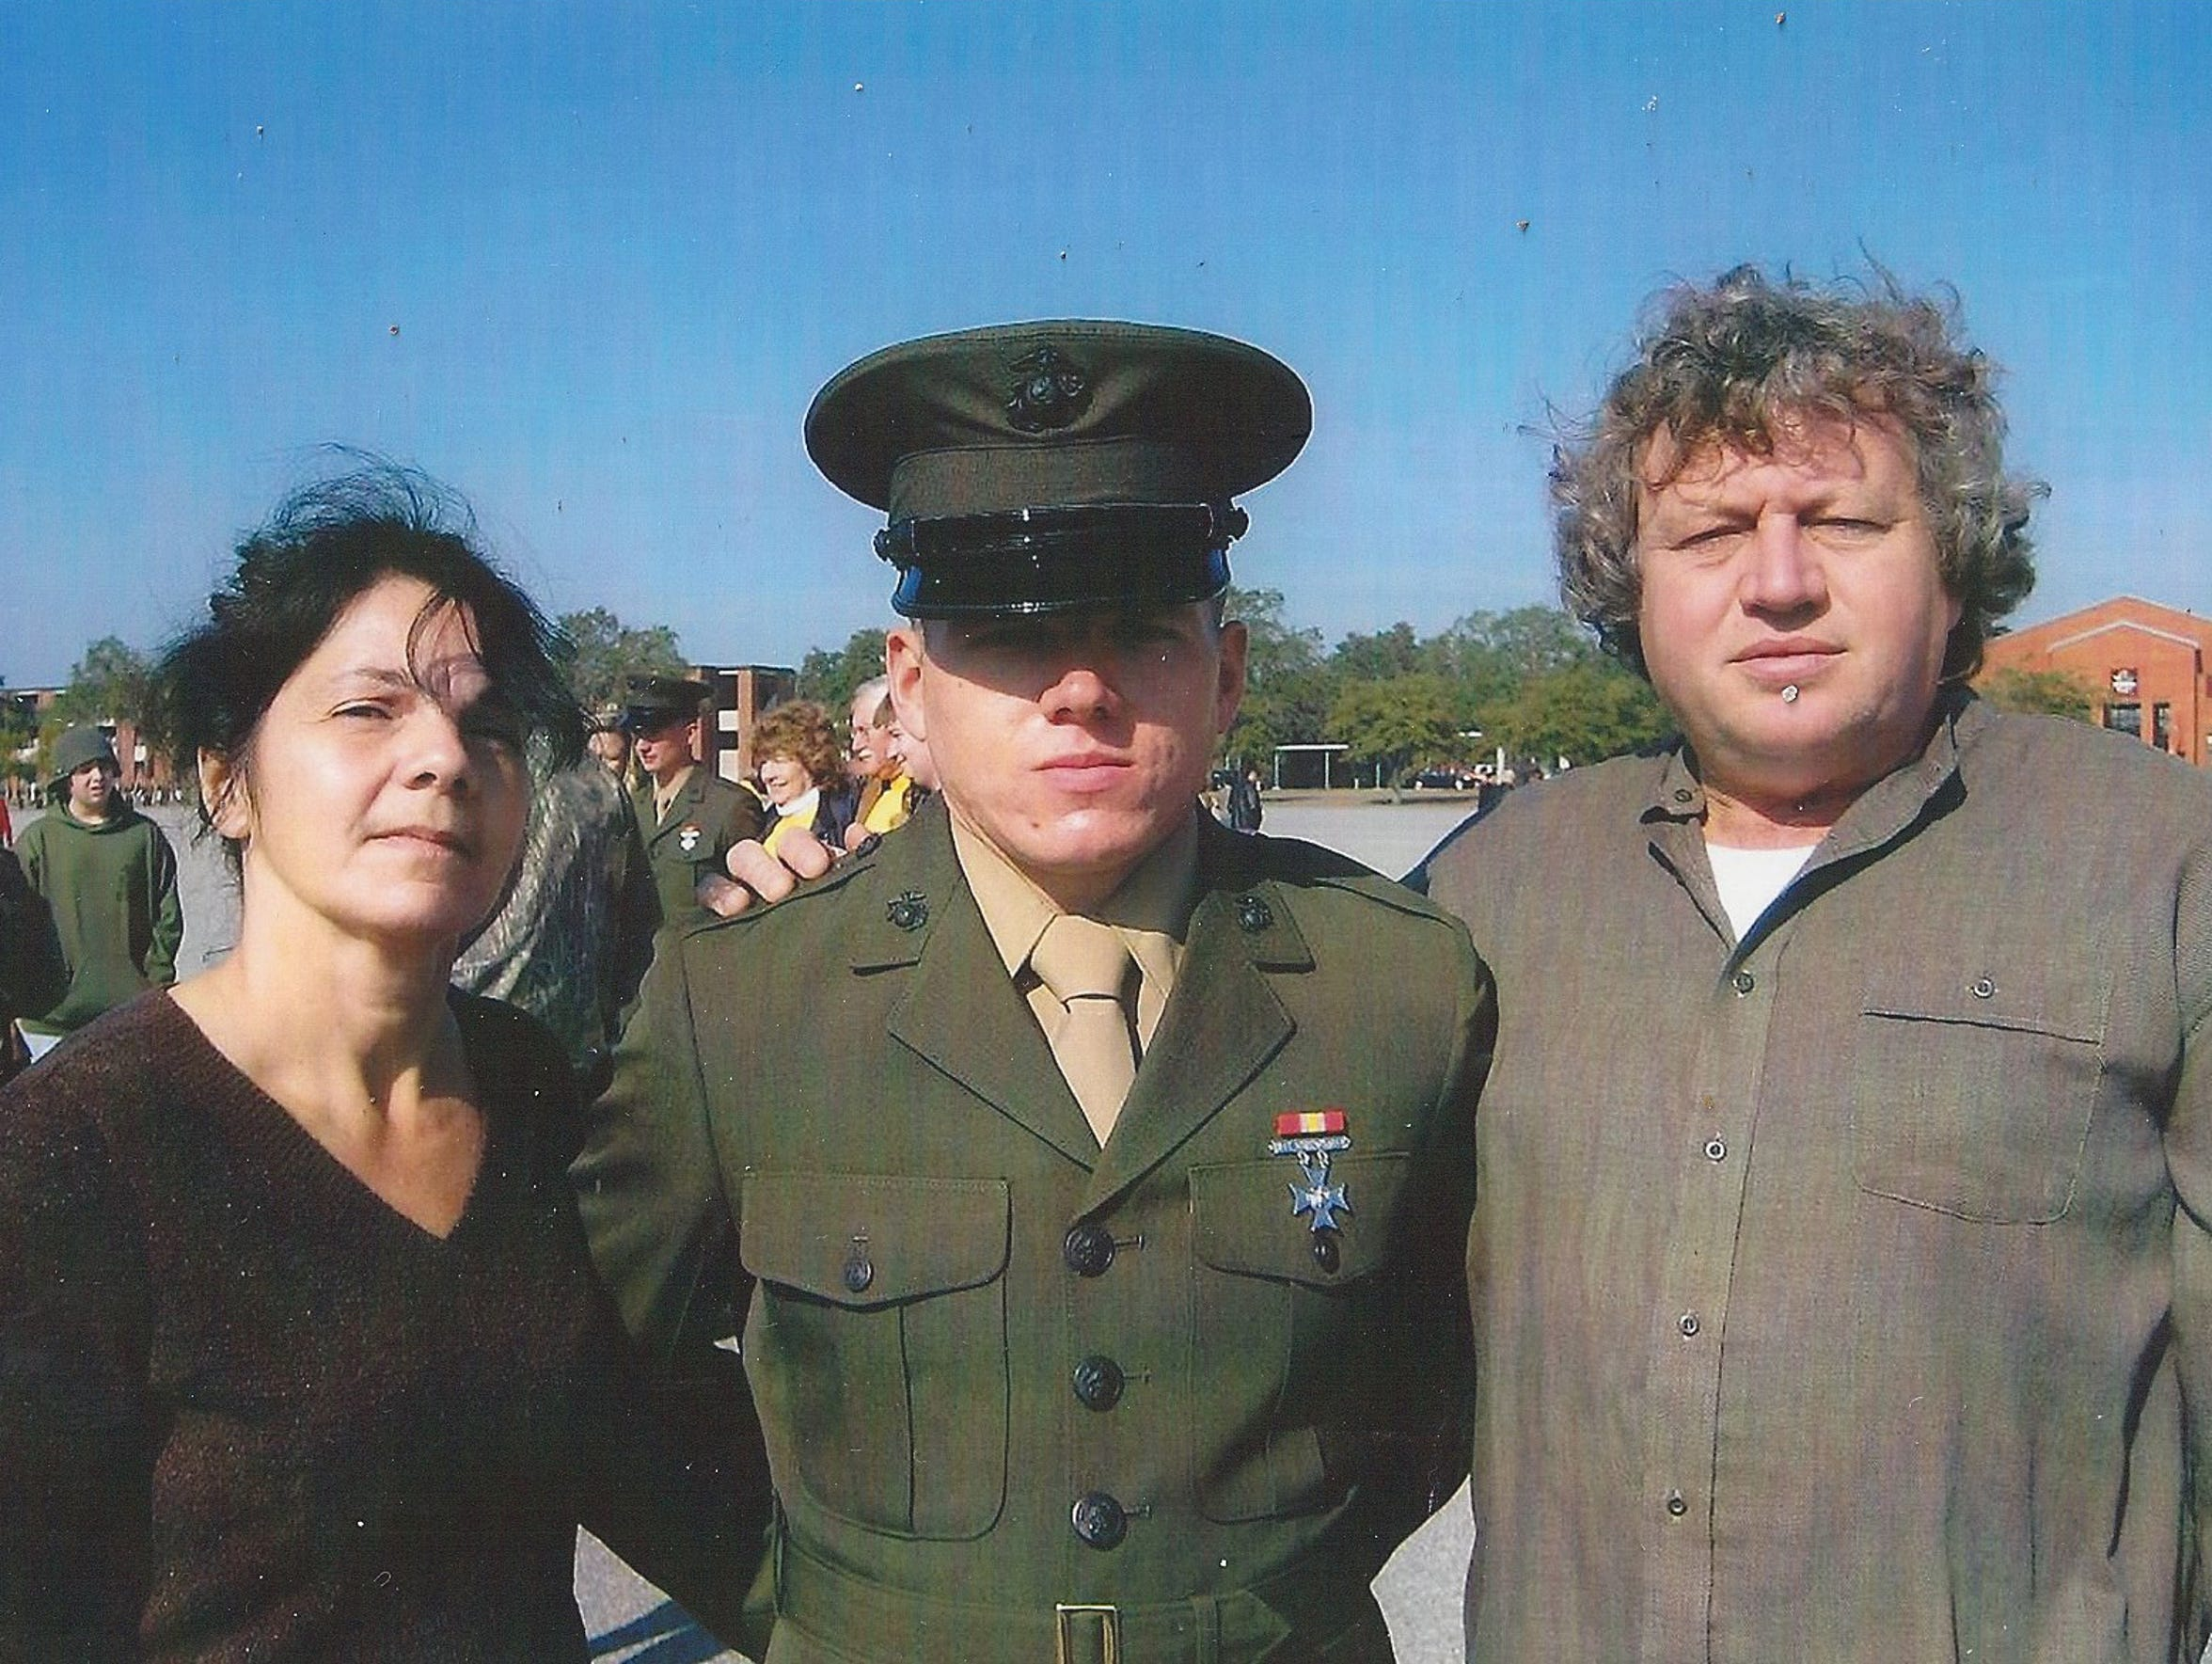 Marine veteran Jacob Faulkner, center, pictured in uniform with his parents.